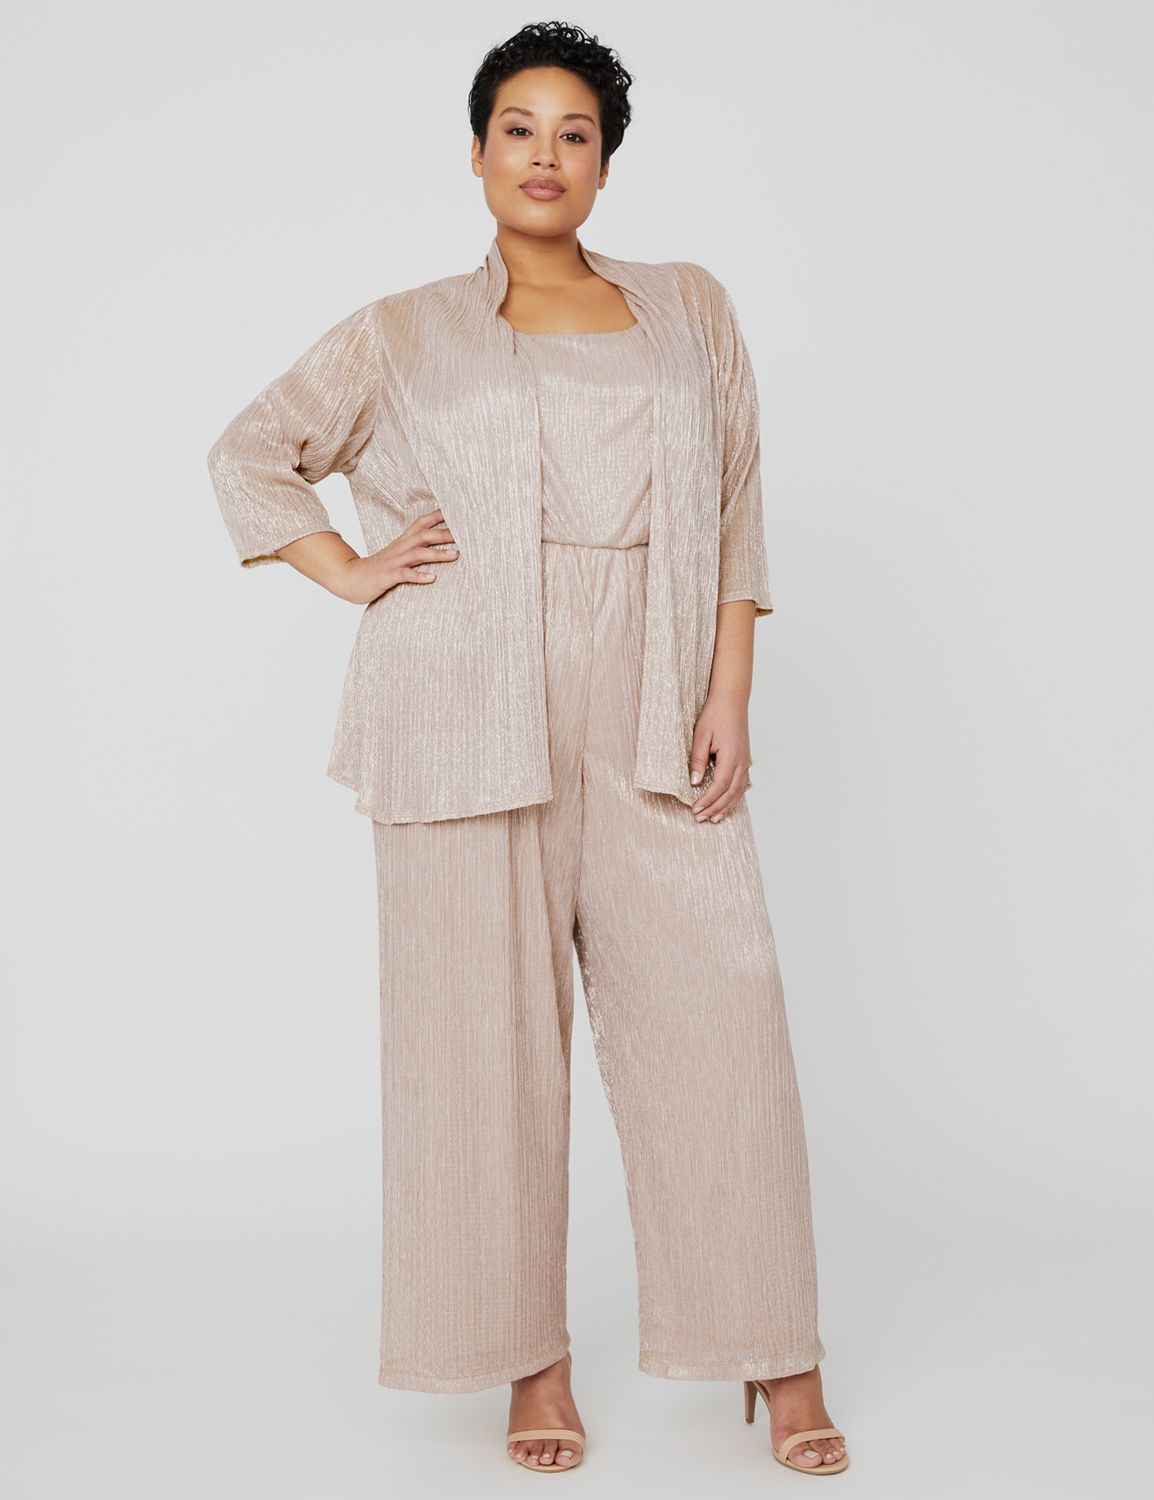 Shimmer Jumpsuit with Jacket 1090989 Jumpsuit with Jacket (94982 MP-300099380